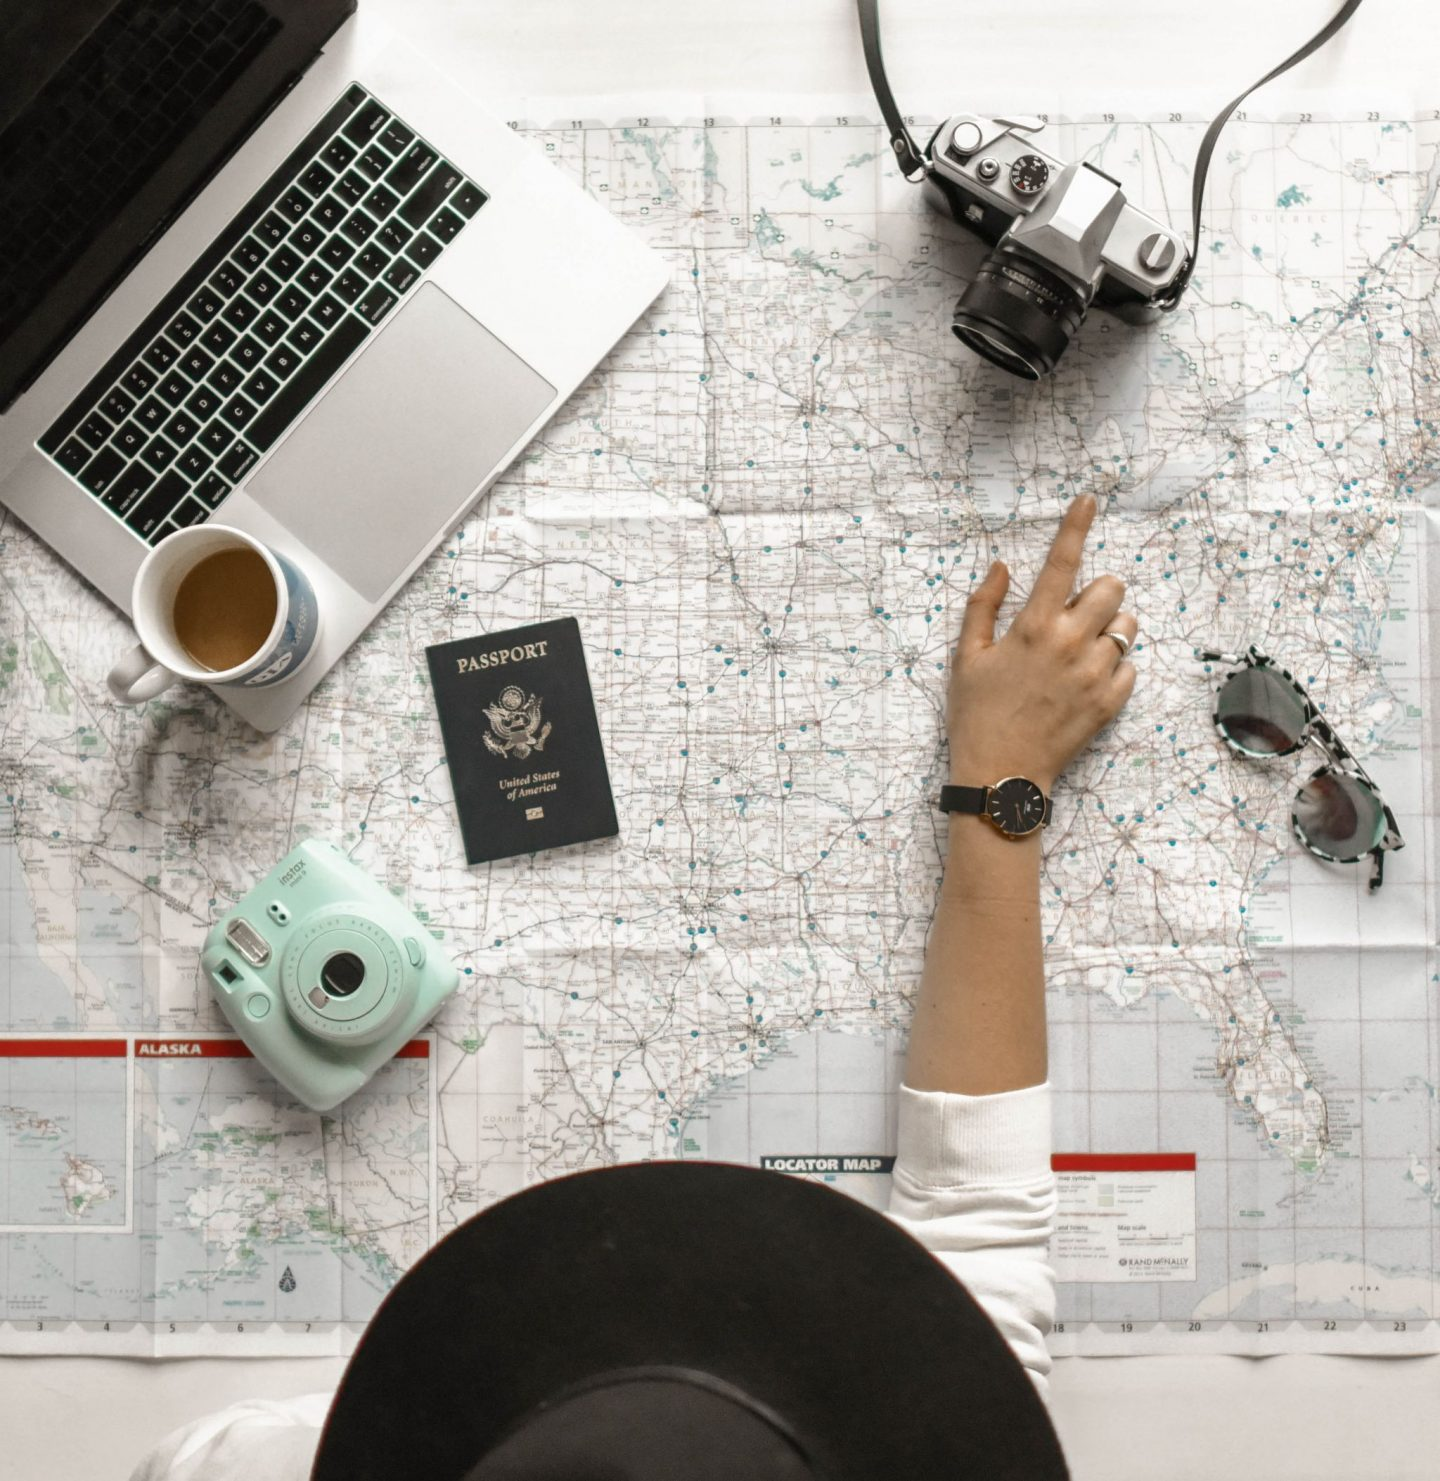 7 WAYS YOU CAN TRAVEL AND STAY FIT